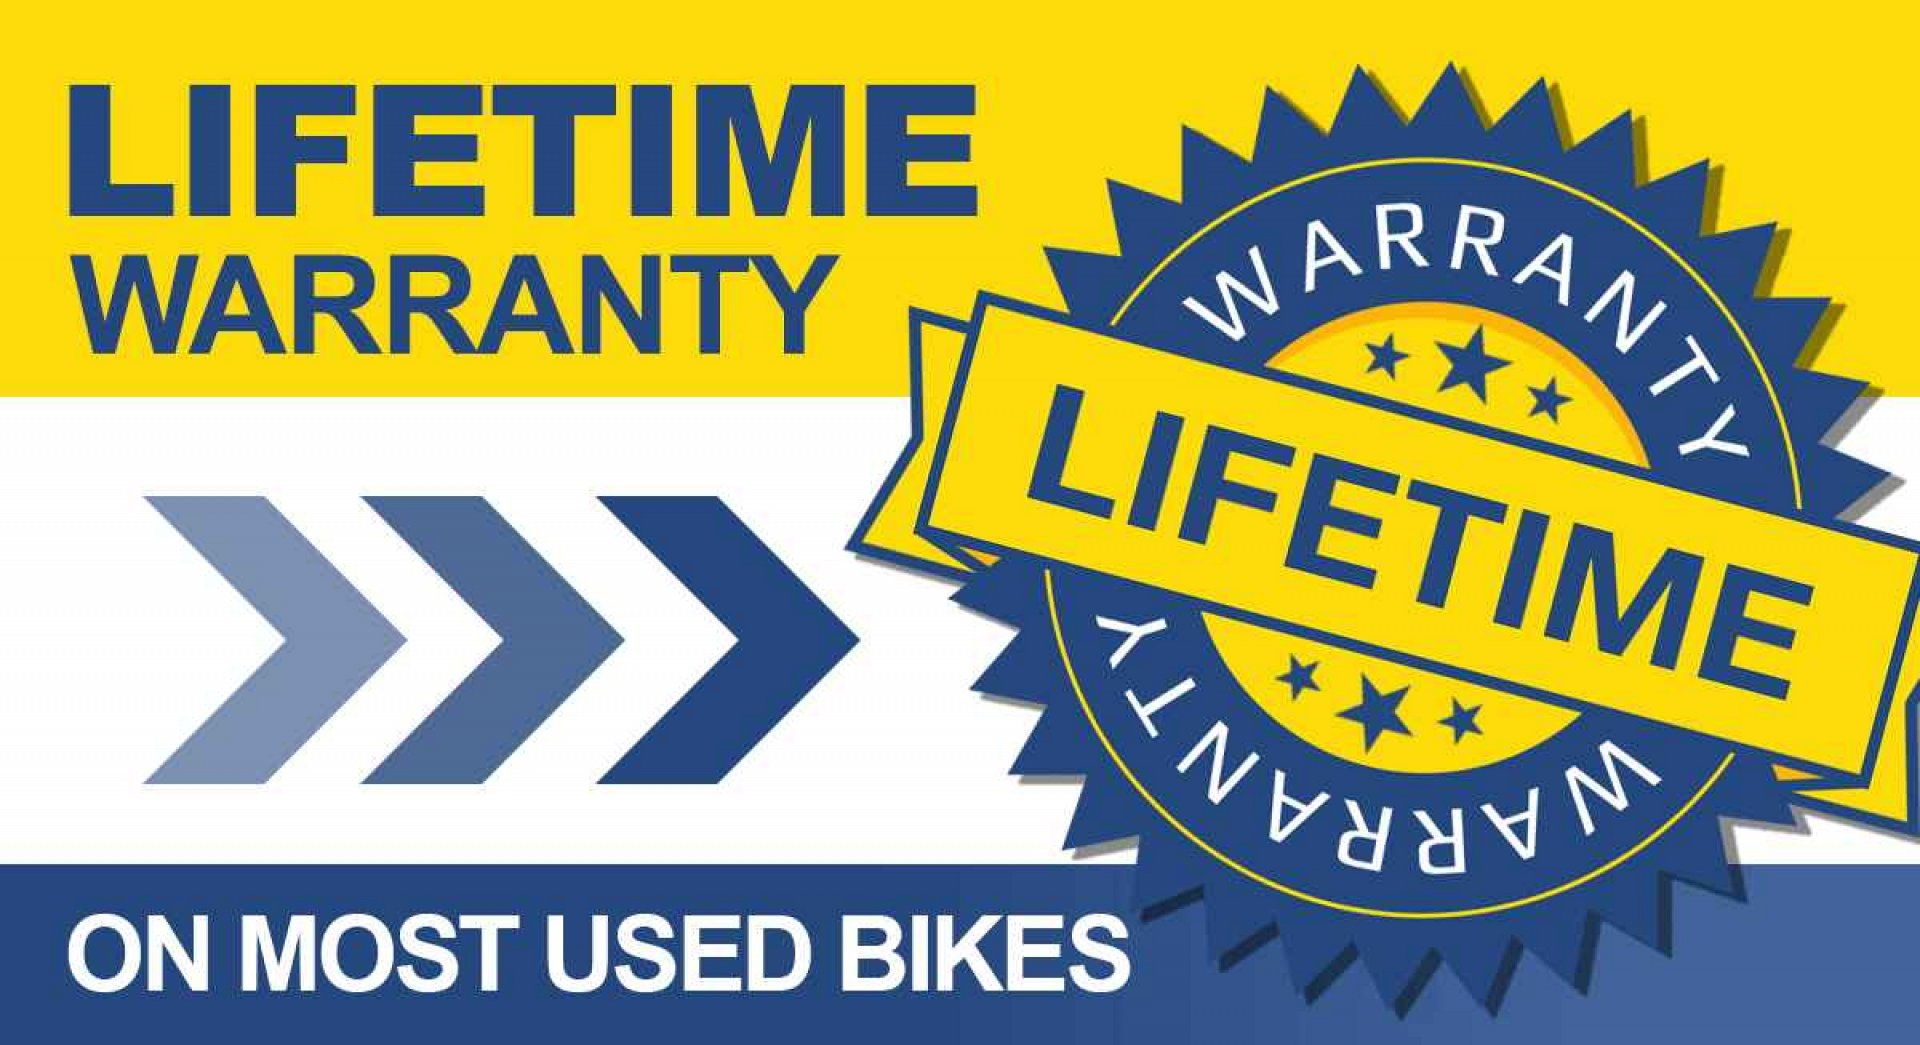 Lifetime Warranty on most Used Motorcycles